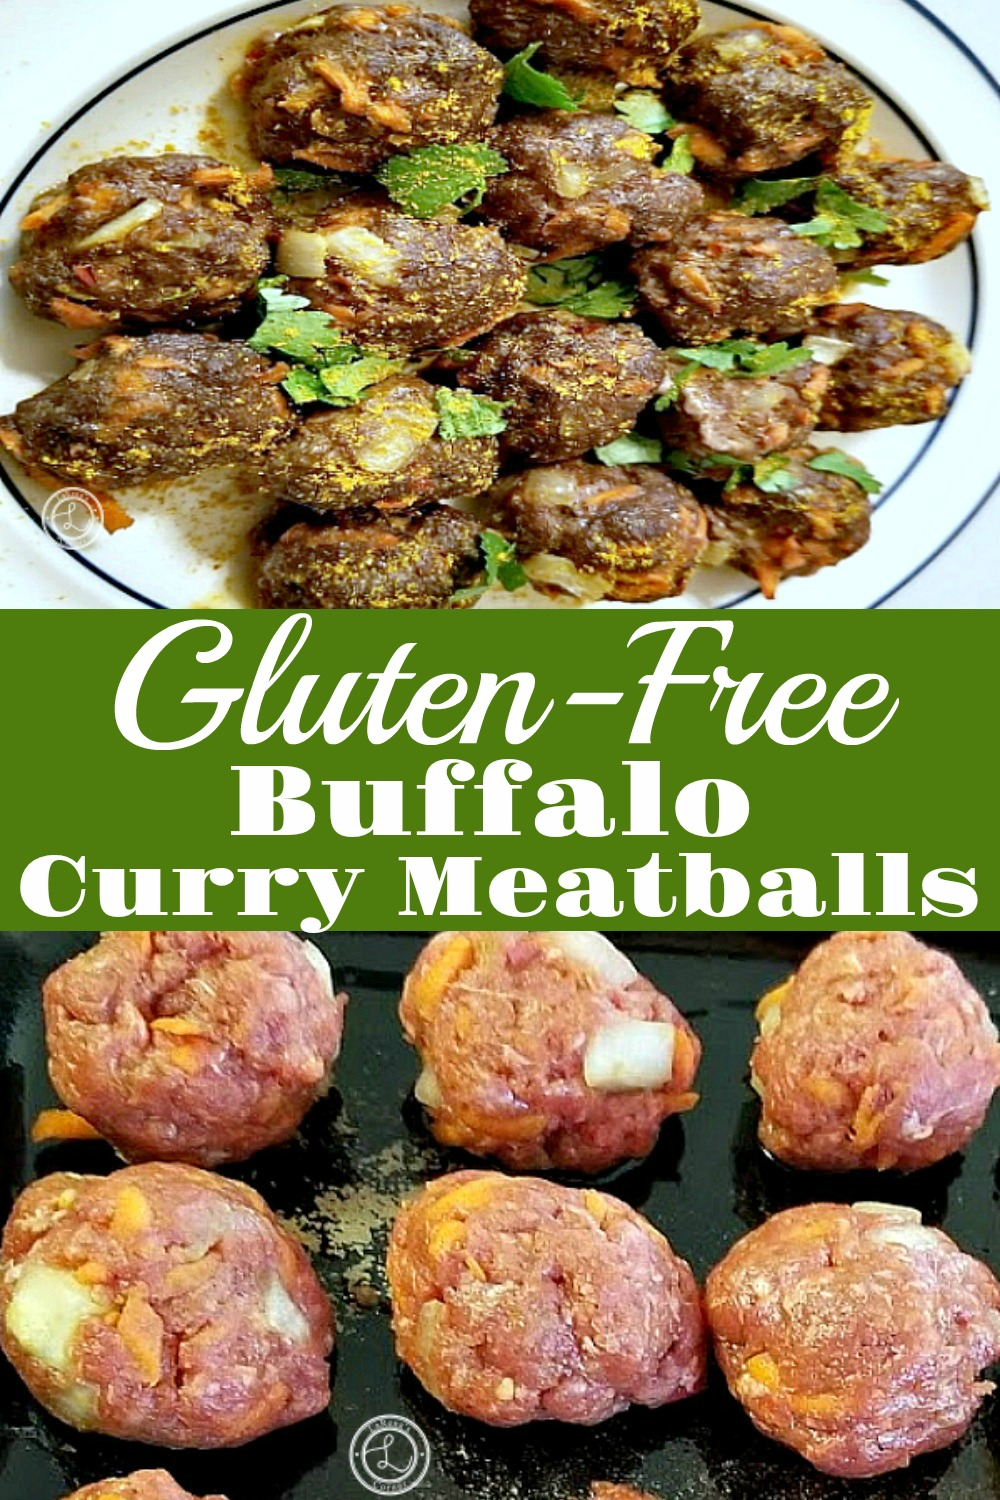 2 pictures. One of Gluten-free Buffalo Curry Meatballs on a plate. Second picture is of meatballs before being cooked.